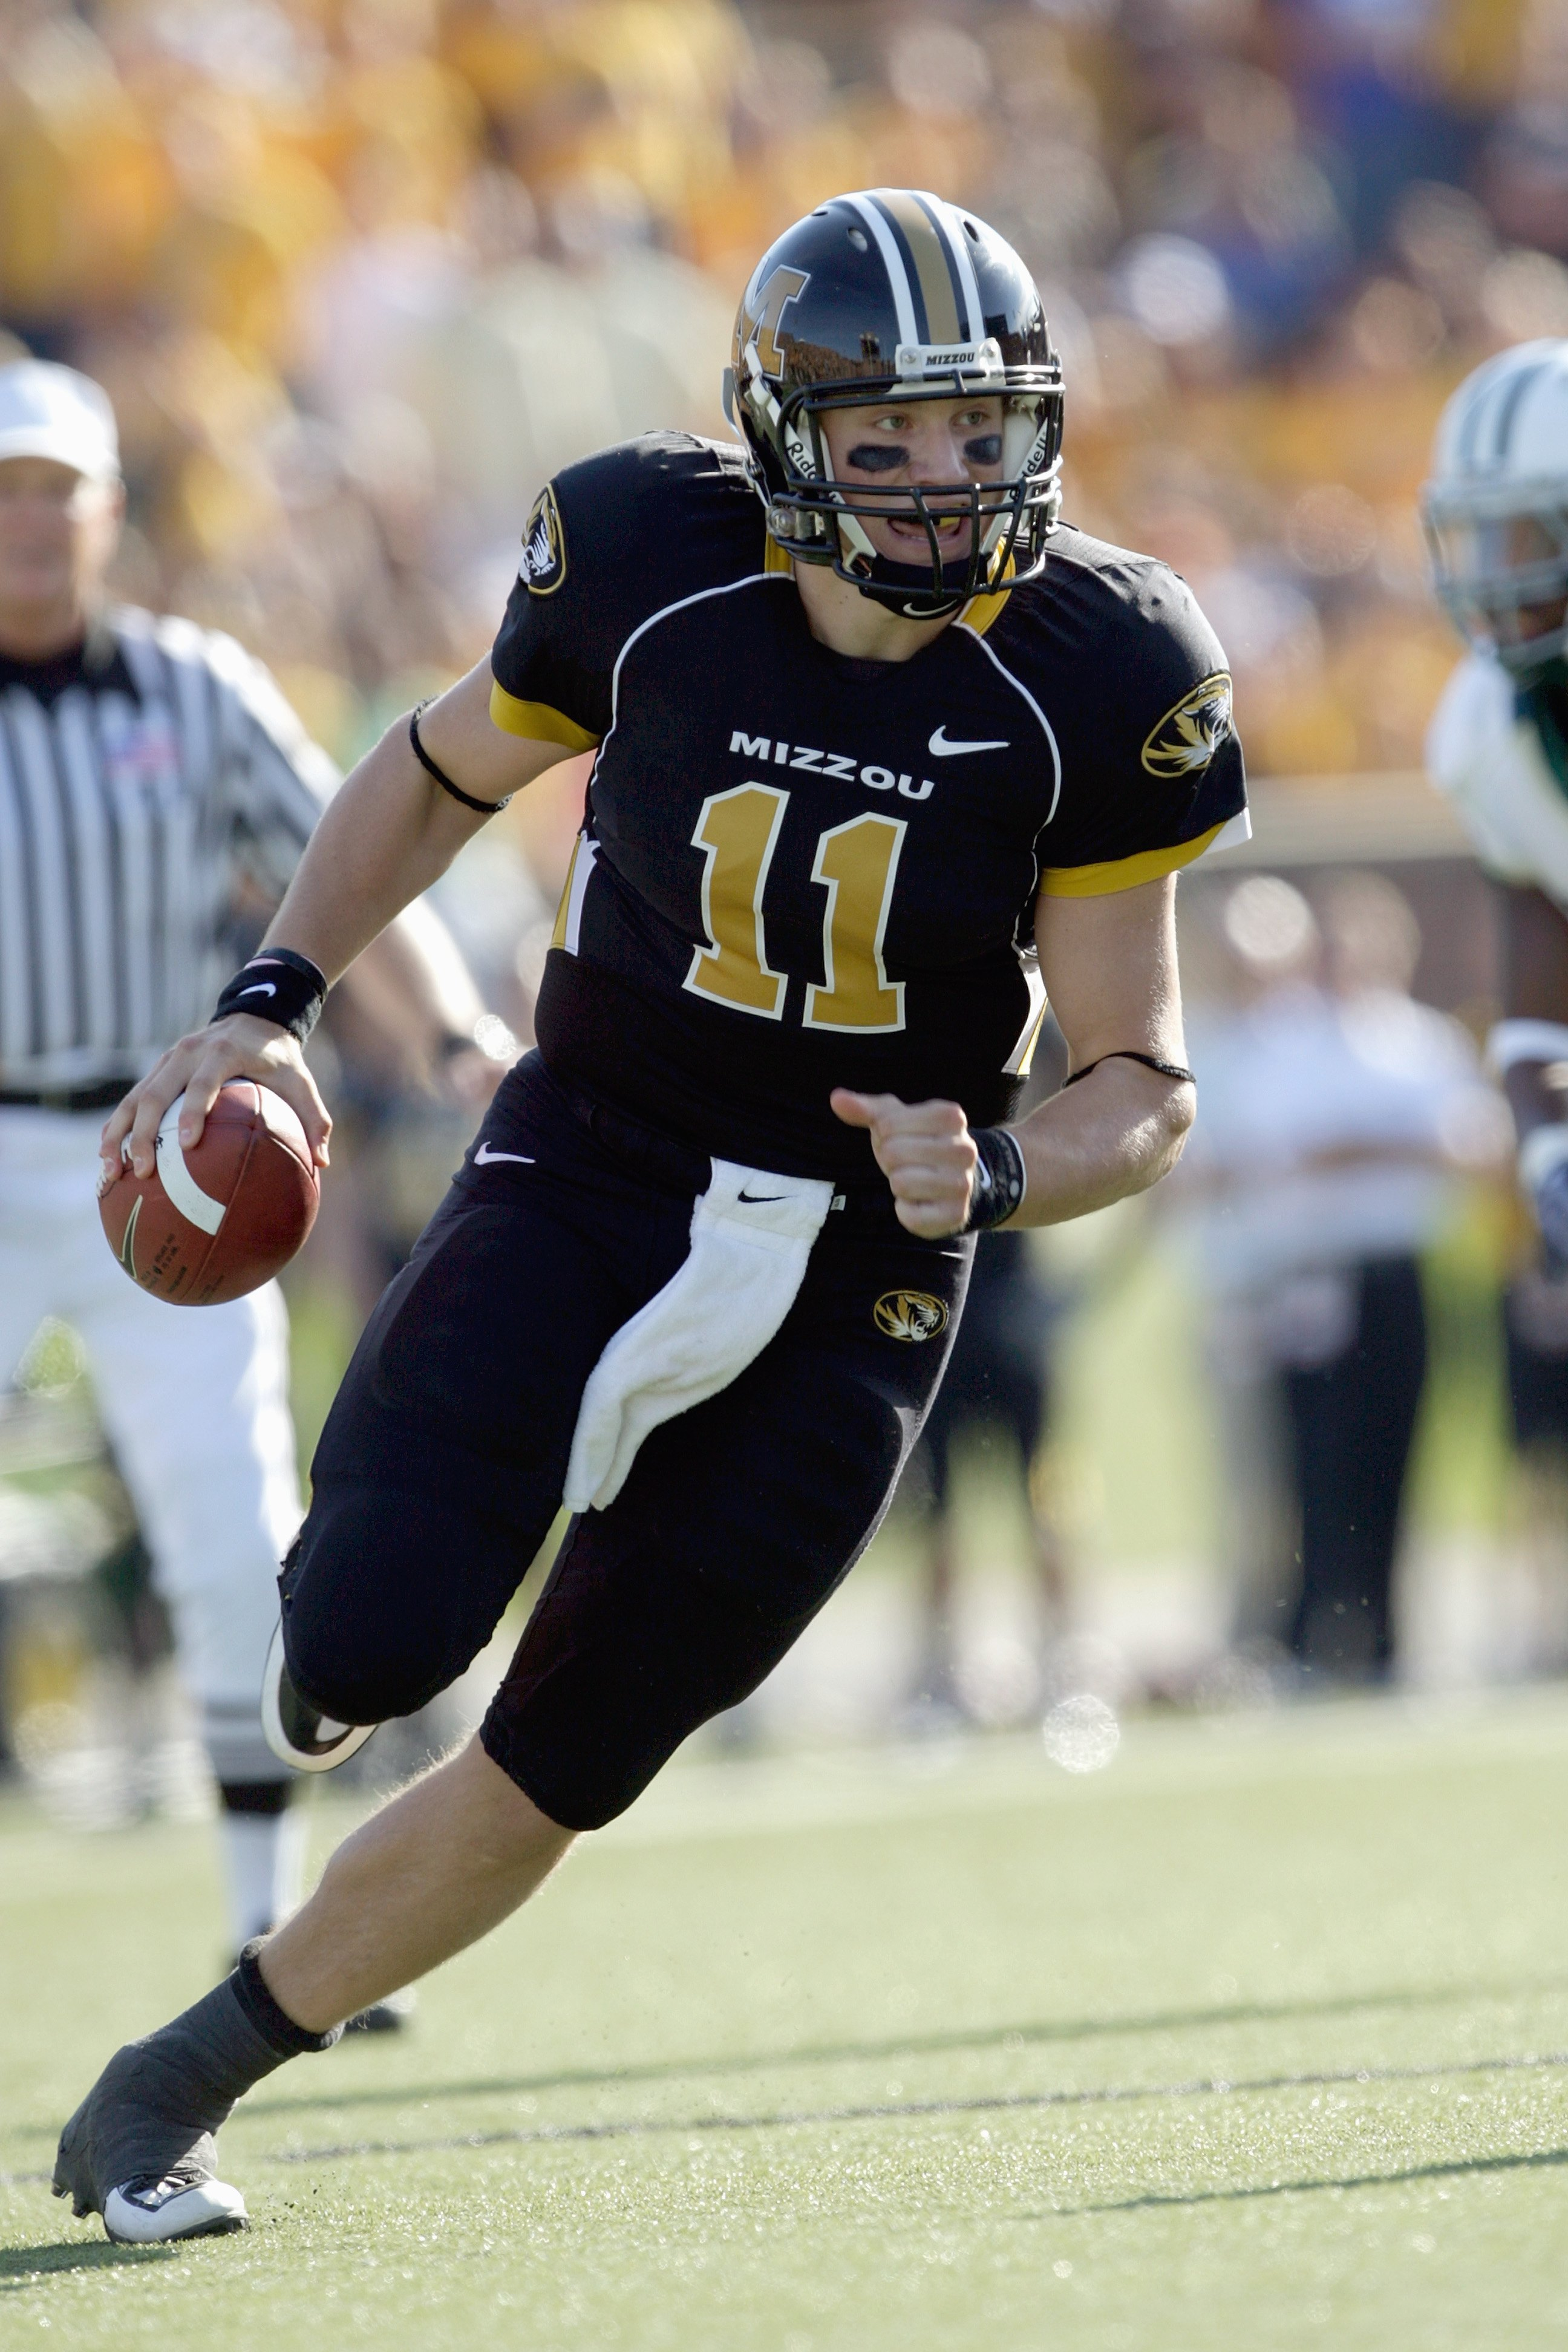 COLUMBIA, MO - NOVEMBER 7:  Quarterback Blaine Gabbert #11 of the Missouri Tigers runs to pass the ball during the game against the Baylor Bears at Faurot Field/Memorial Stadium on November 7, 2009 in Columbia, Missouri. (Photo by Jamie Squire/Getty Image